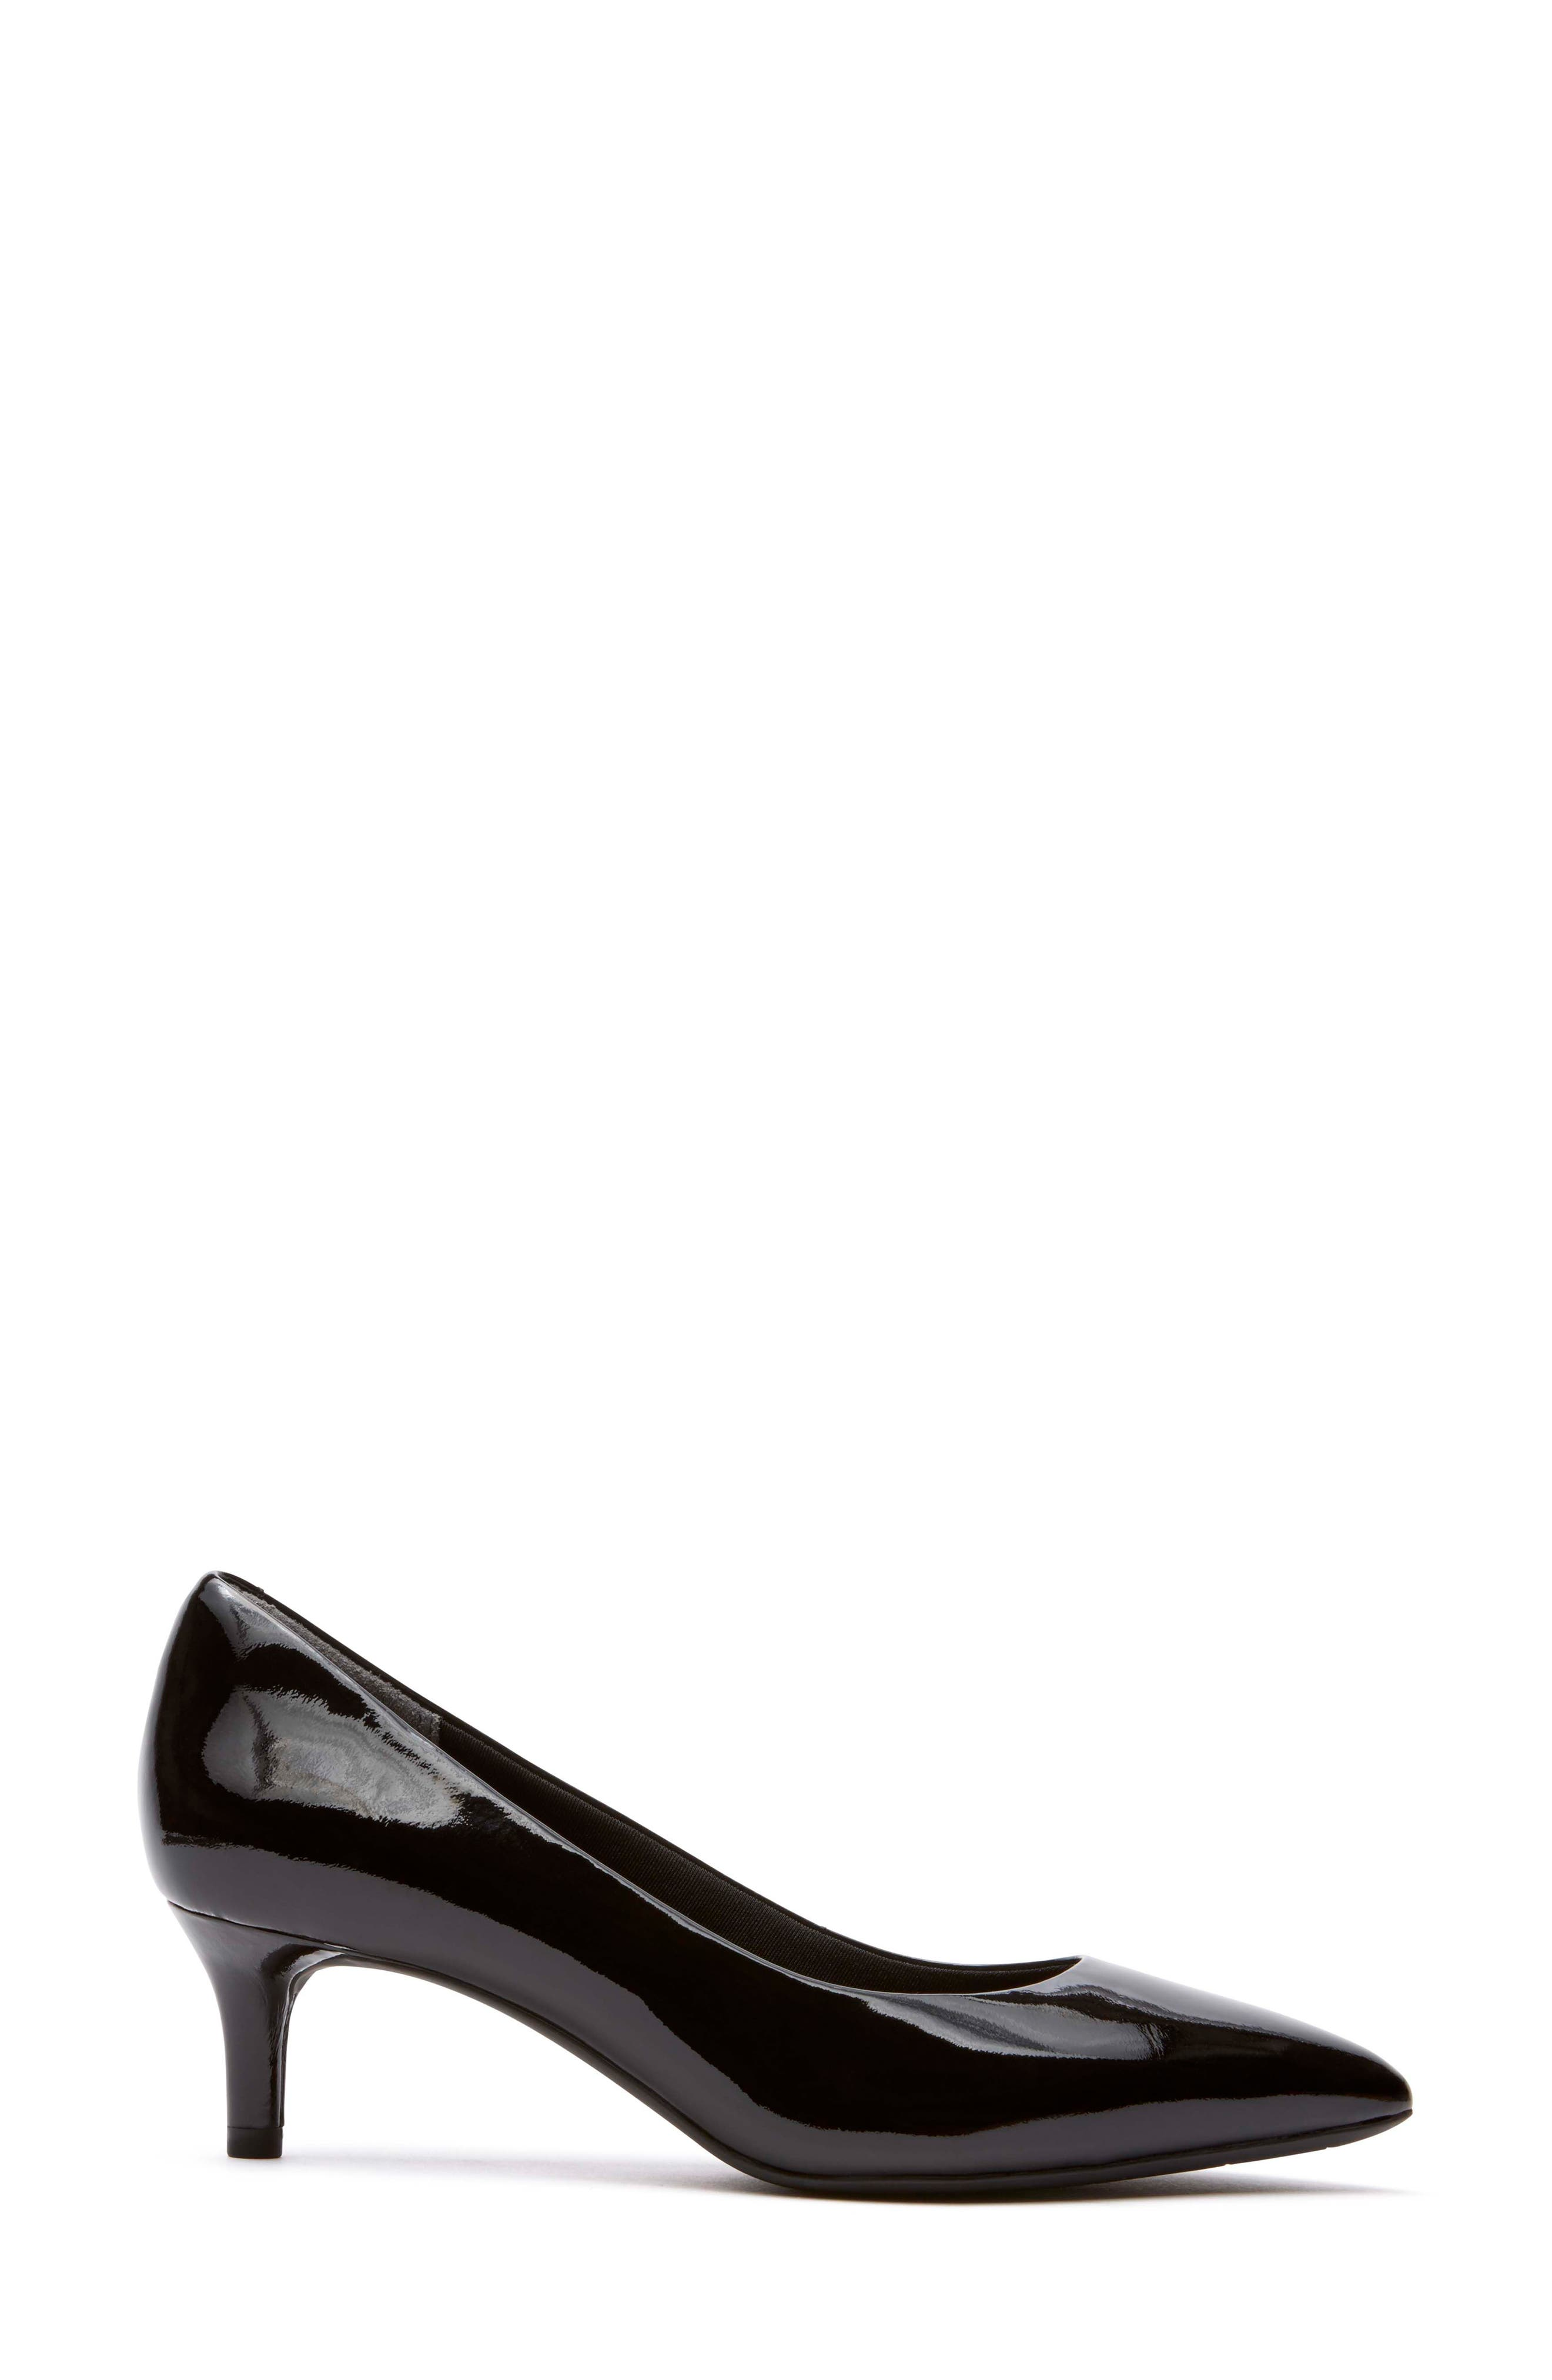 Kalila Luxe Pump,                             Alternate thumbnail 3, color,                             BLACK PATENT LEATHER